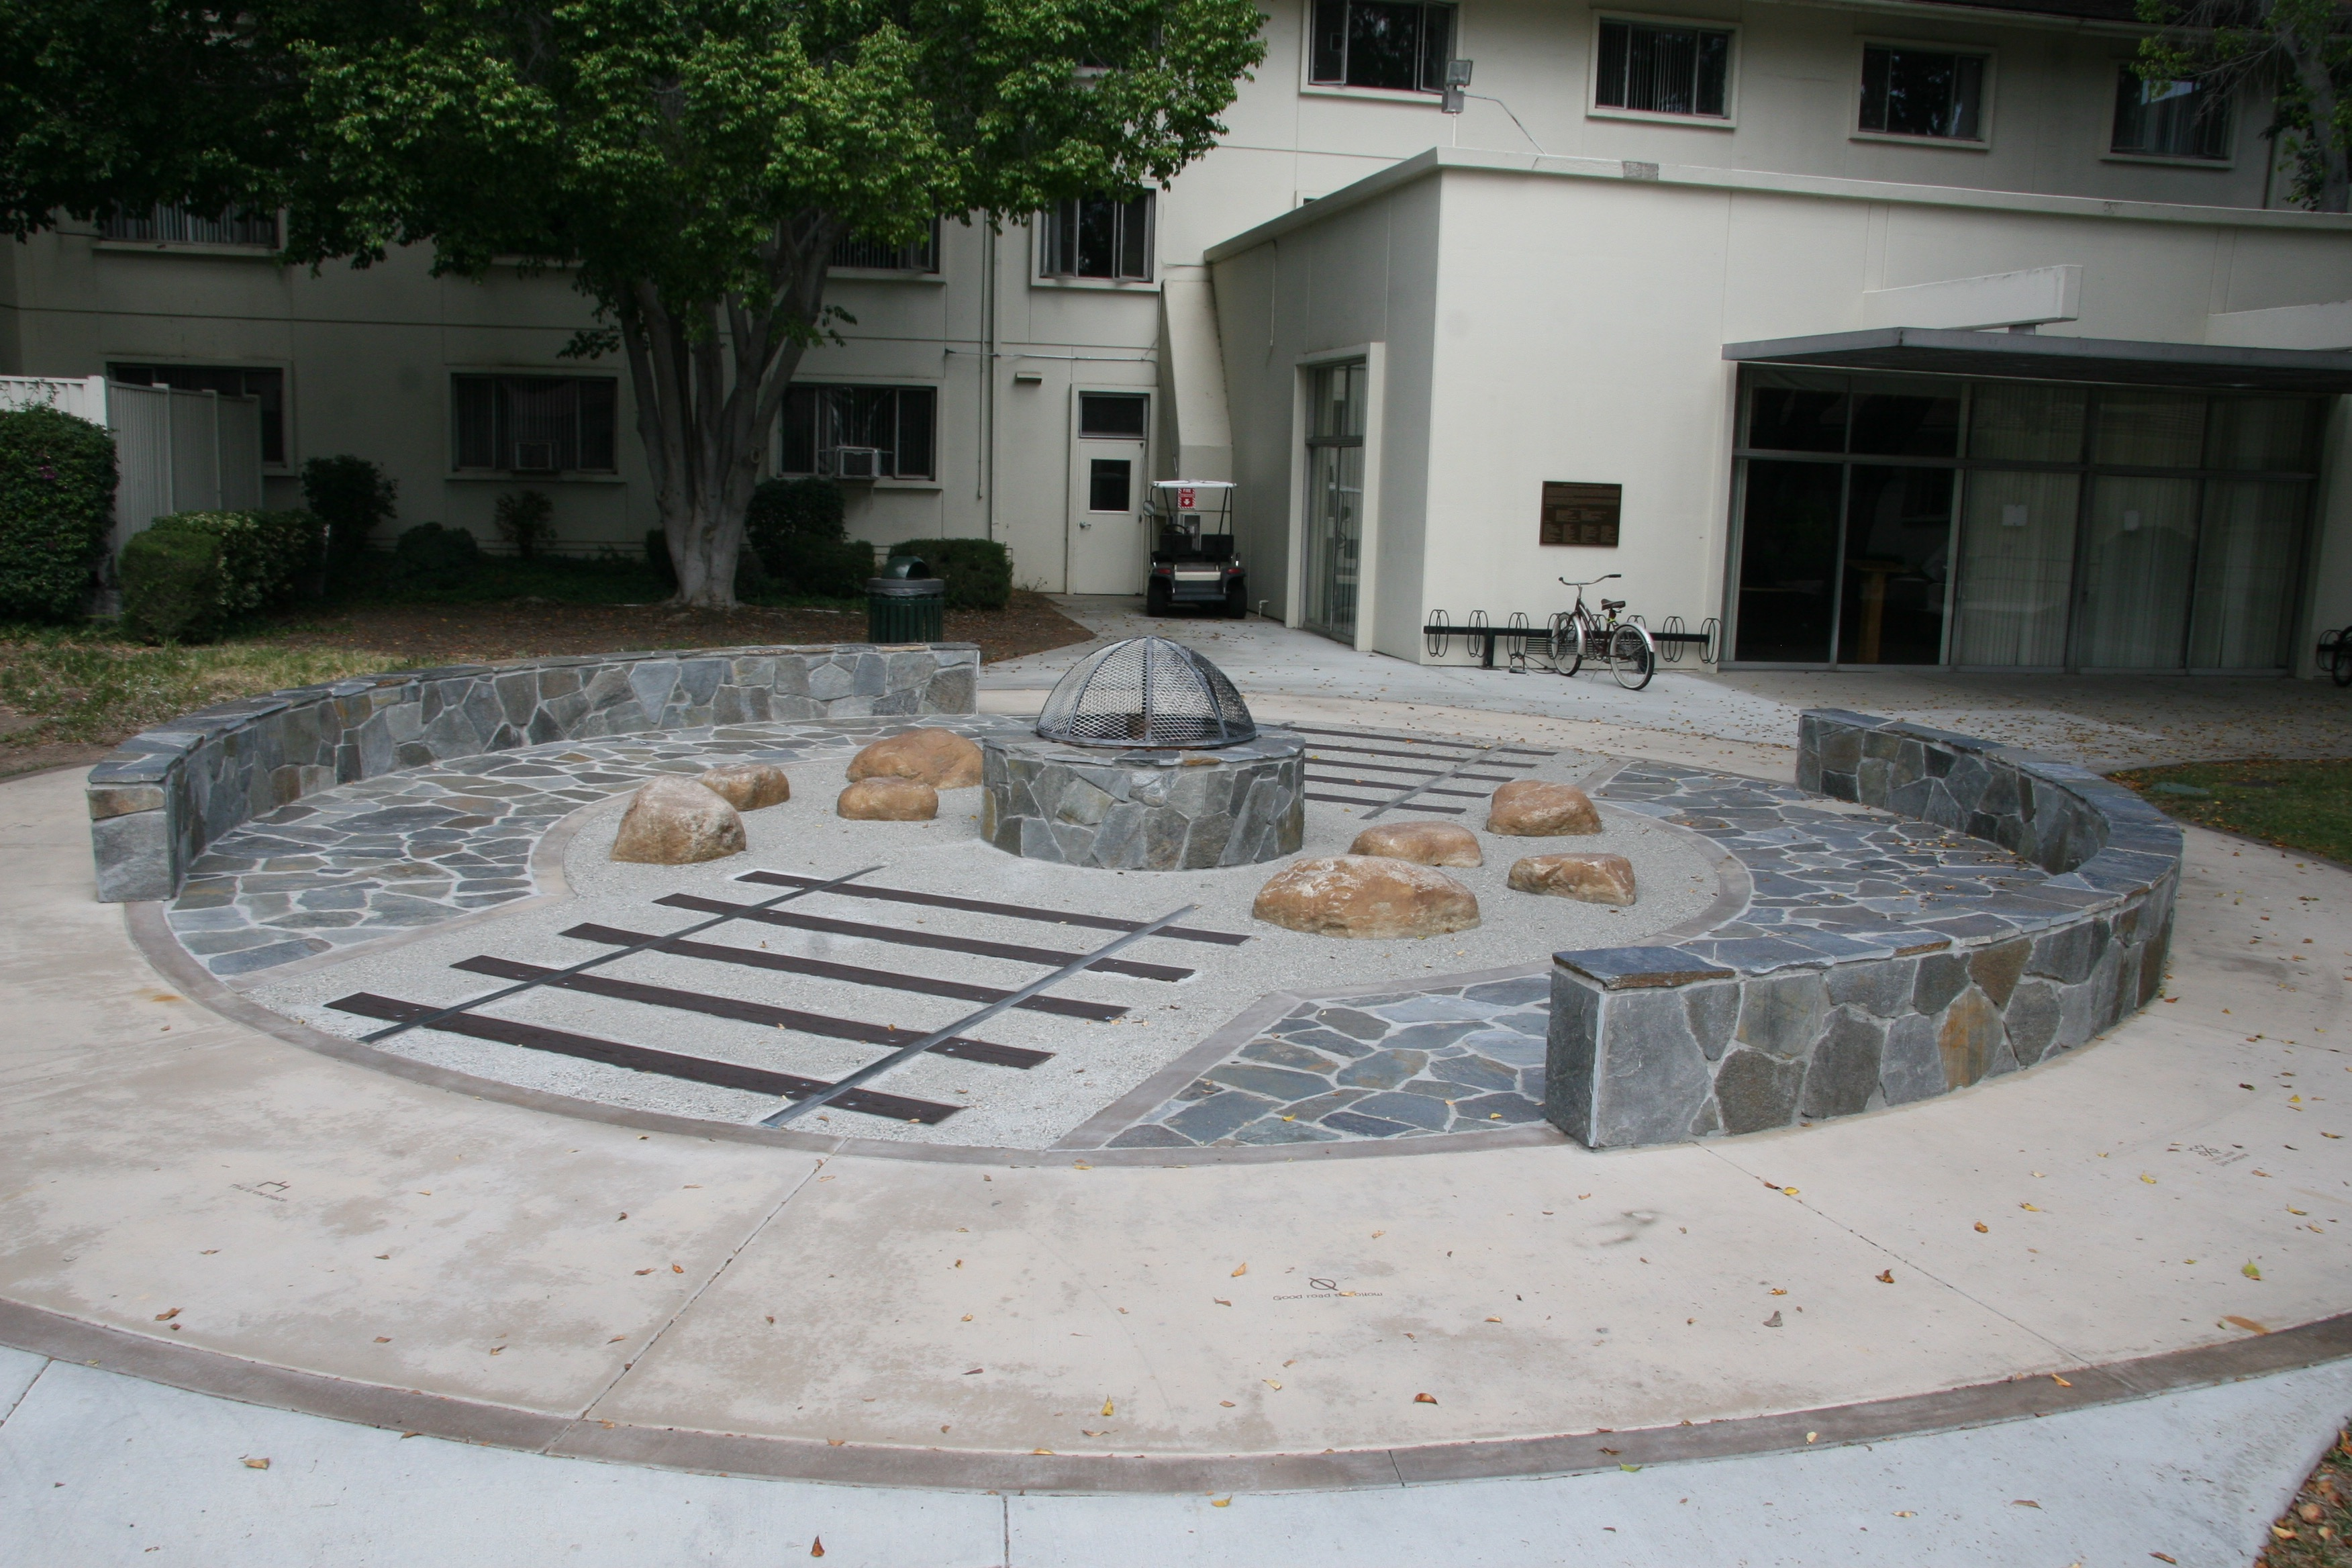 landscape architecture whittier architectural plans ca landscape architecture at carty general contracting is a combination of art and science that from early planning to implementation promotes the wise